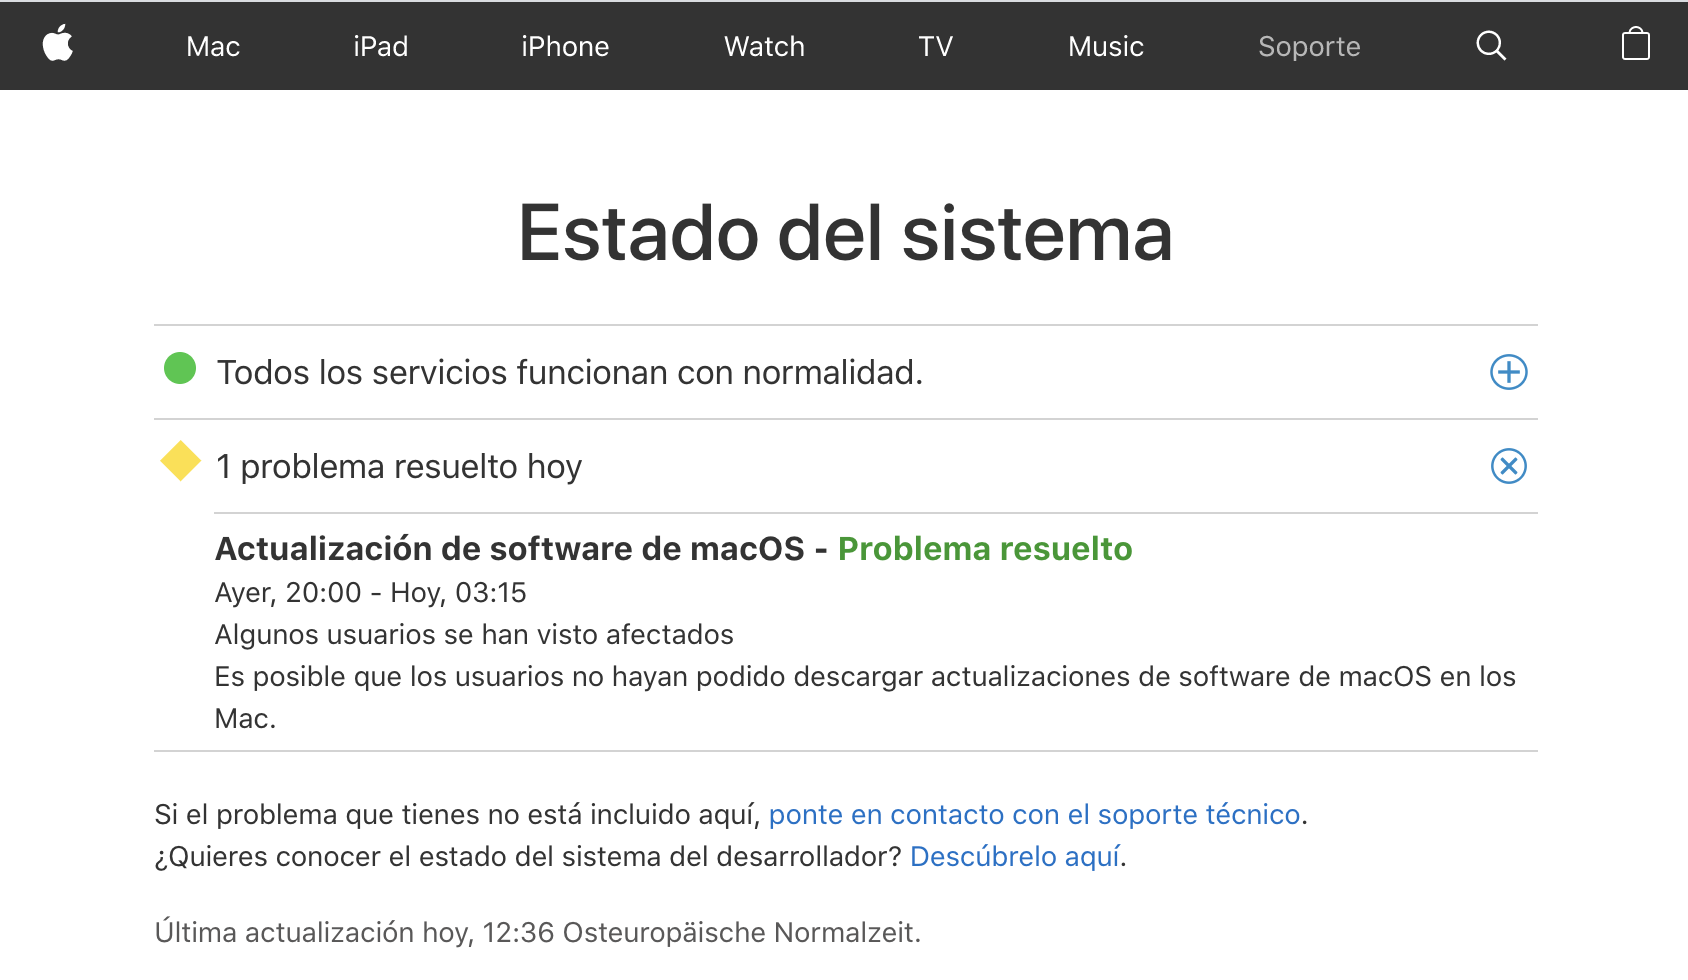 Apple's system status page